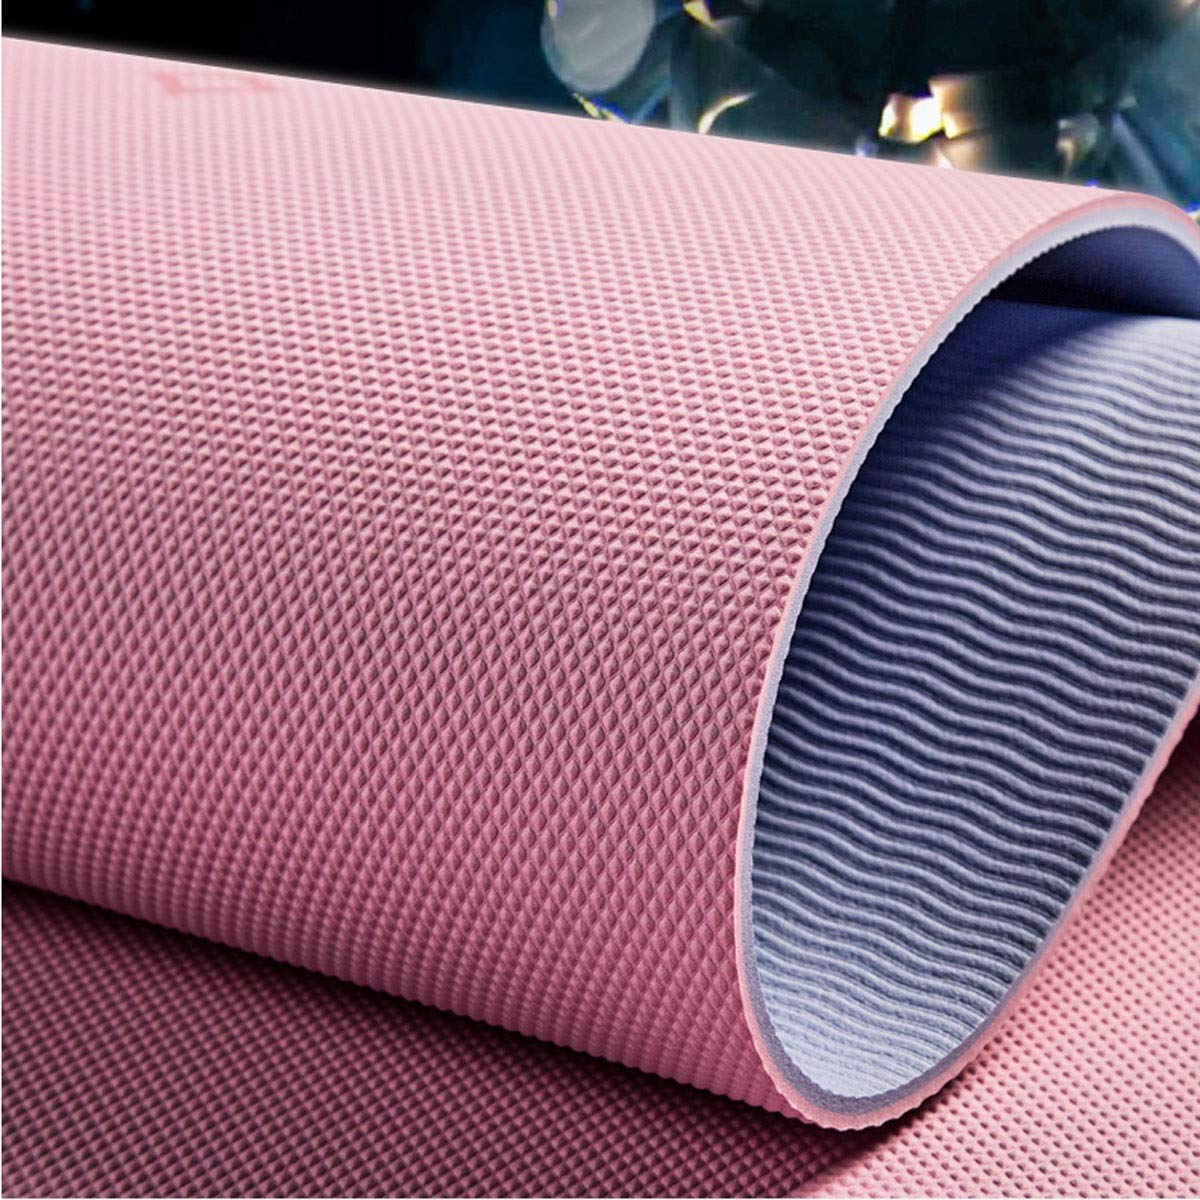 73.2 * 26.4 Inches, 6 / 8mm, Two Styles for You to Choose Jielongtongxun Yoga Mat High-Elastic Design Small Gift Beautiful Thick and Long Comfortable Yoga Mat